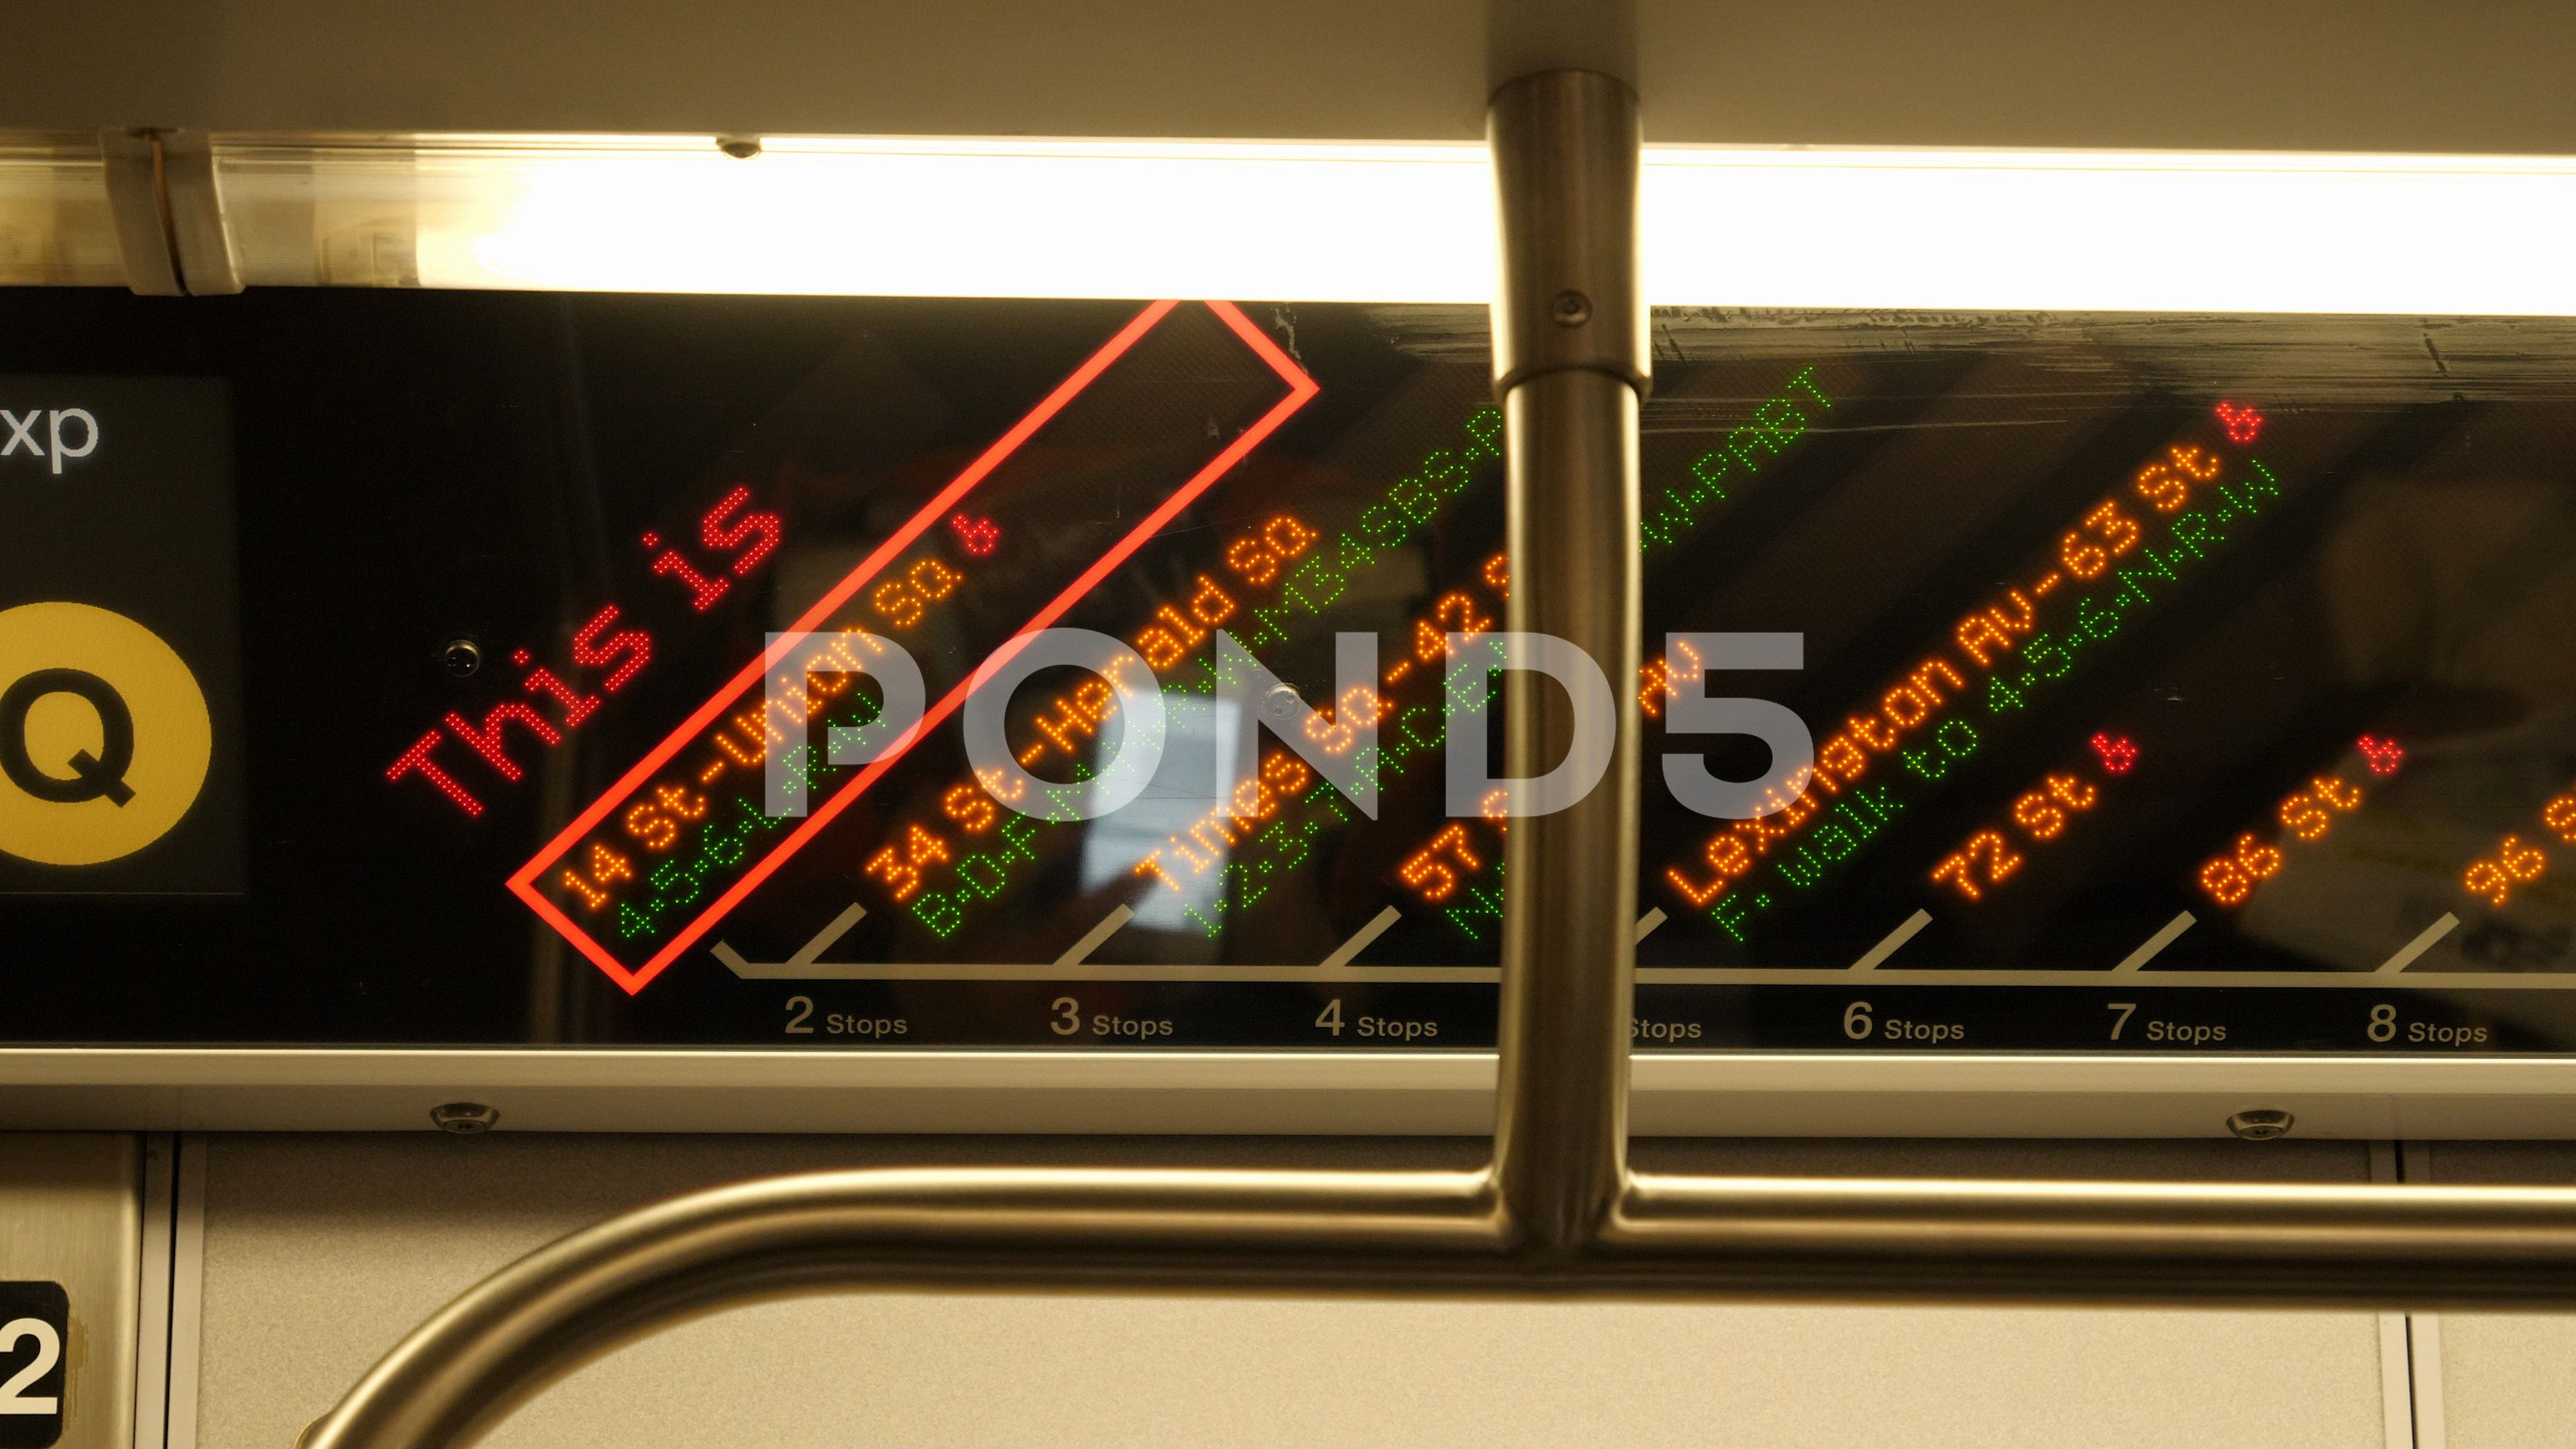 New York City Subway Map Brochure.City Map In Subway Train New York City Stock Footage Subway Map